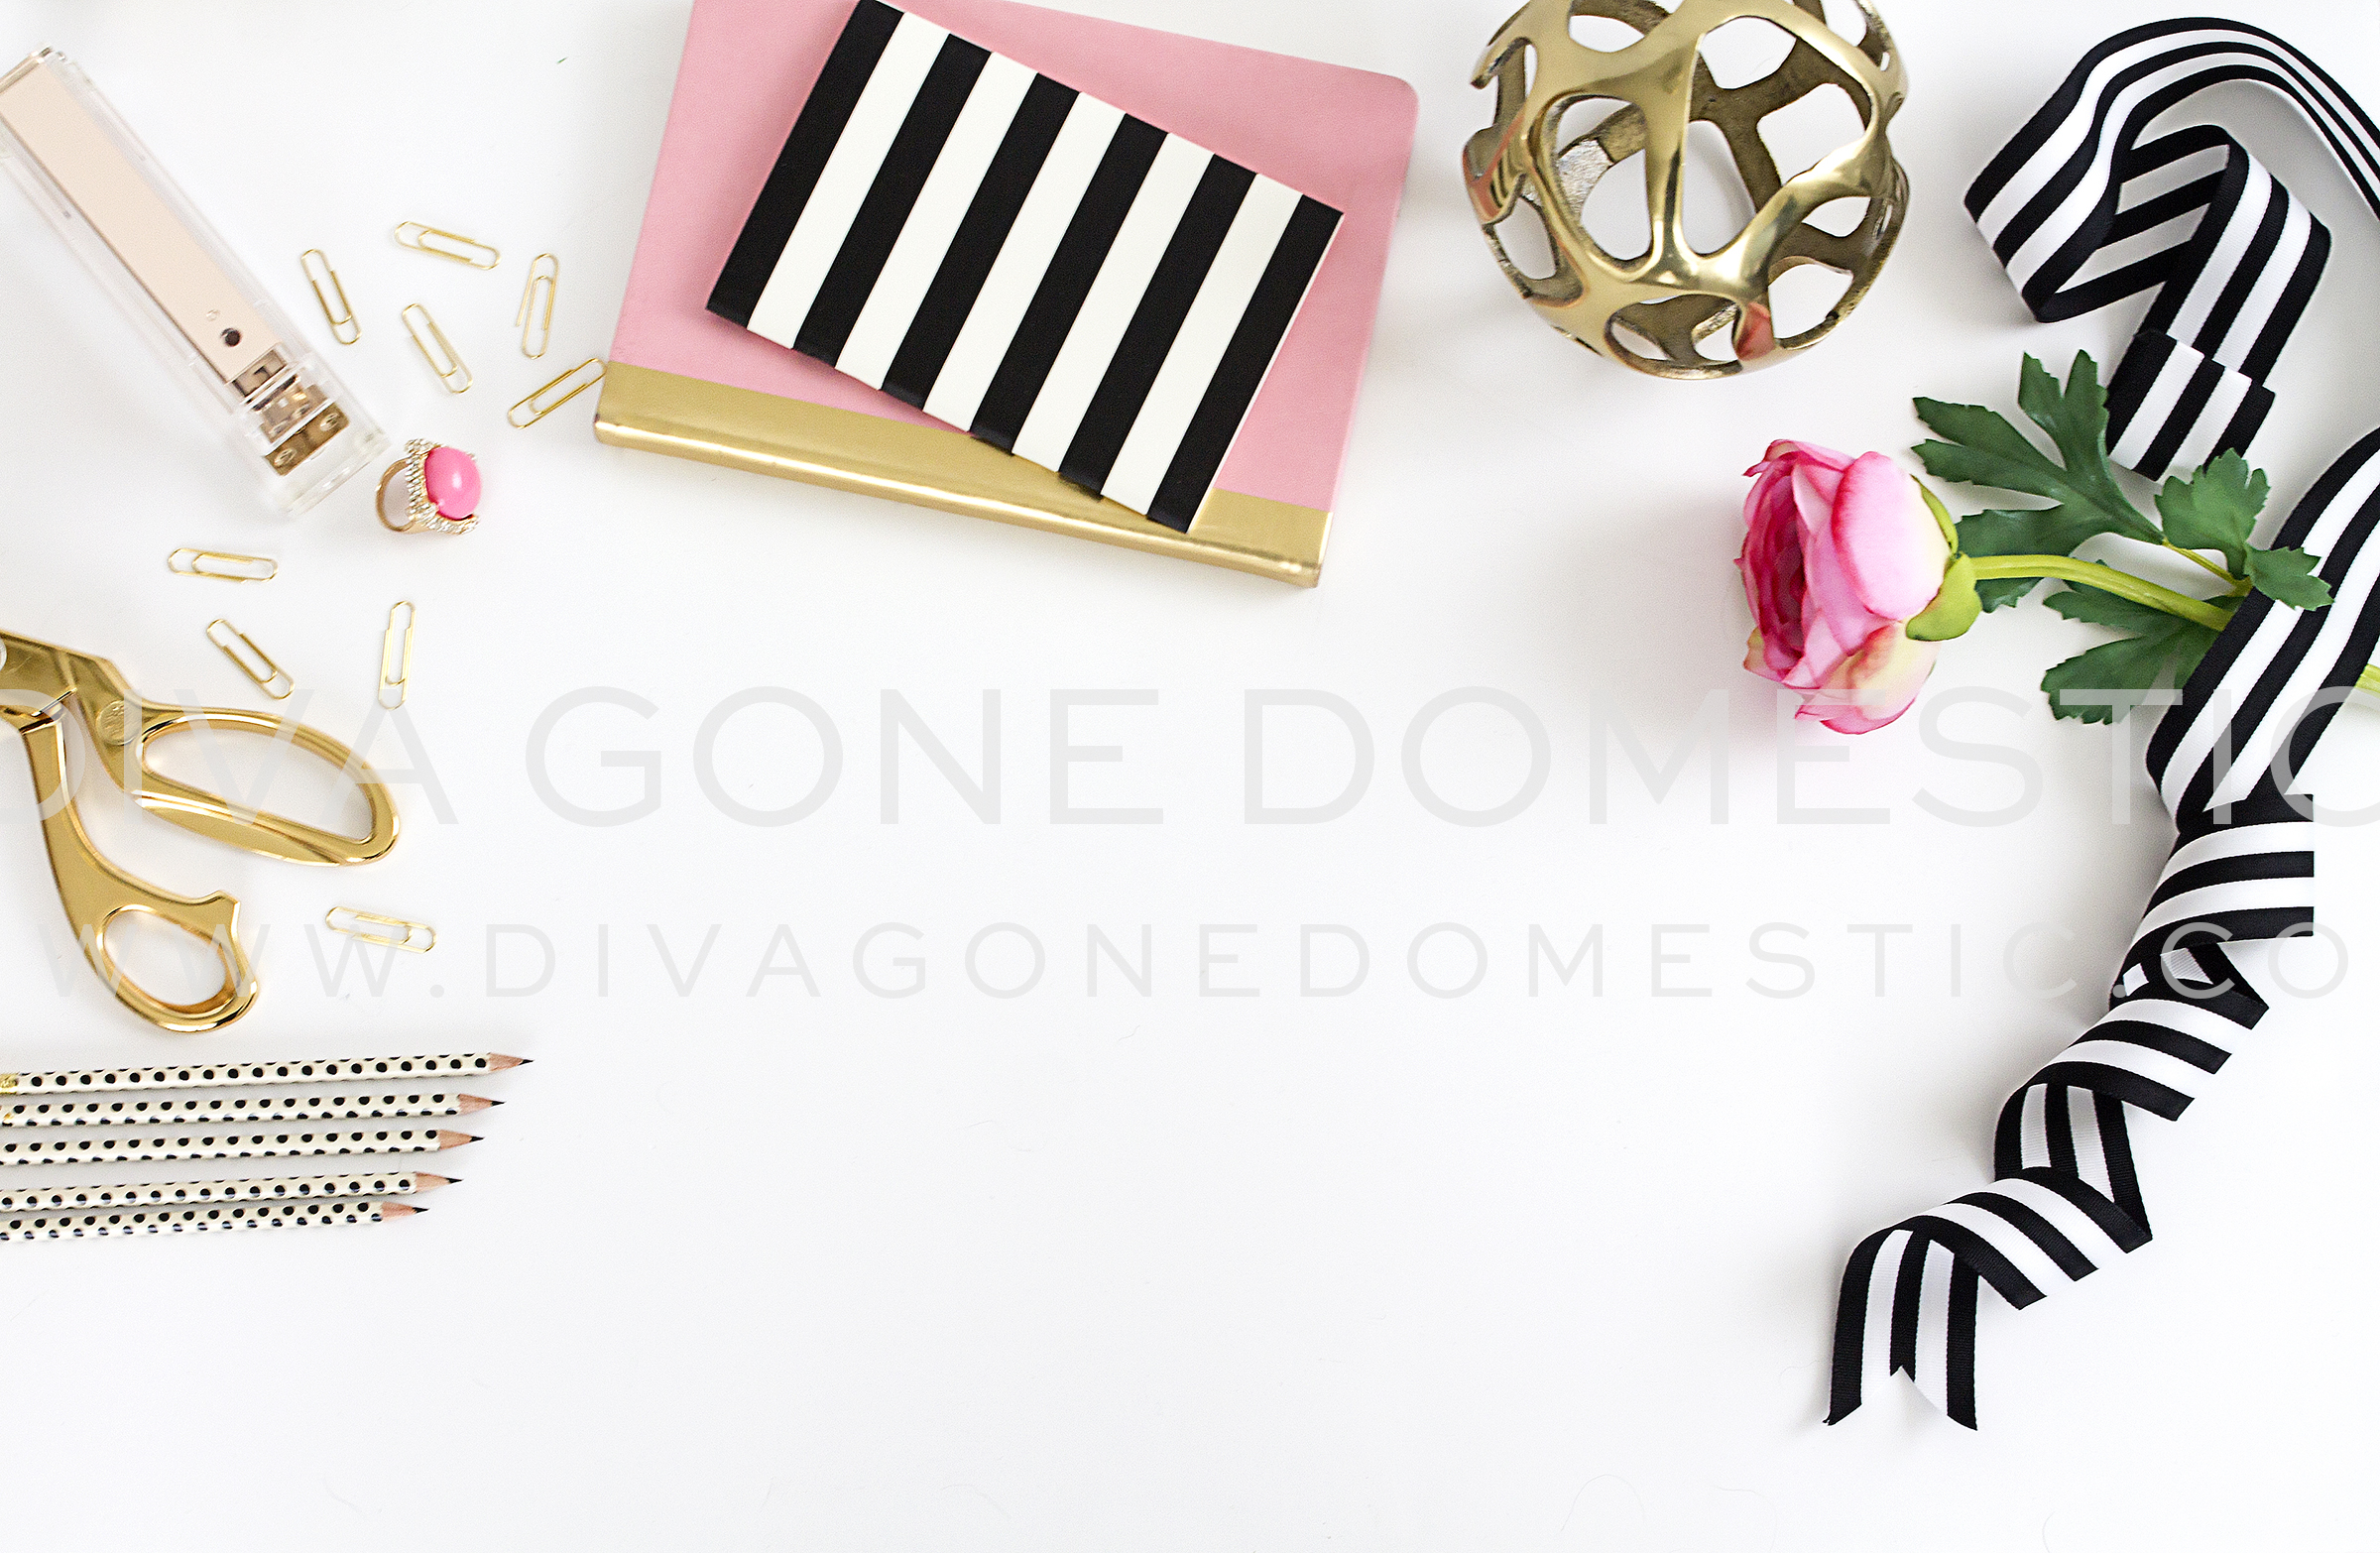 Styled Desk Top Chic Pink Office Product Mockups On